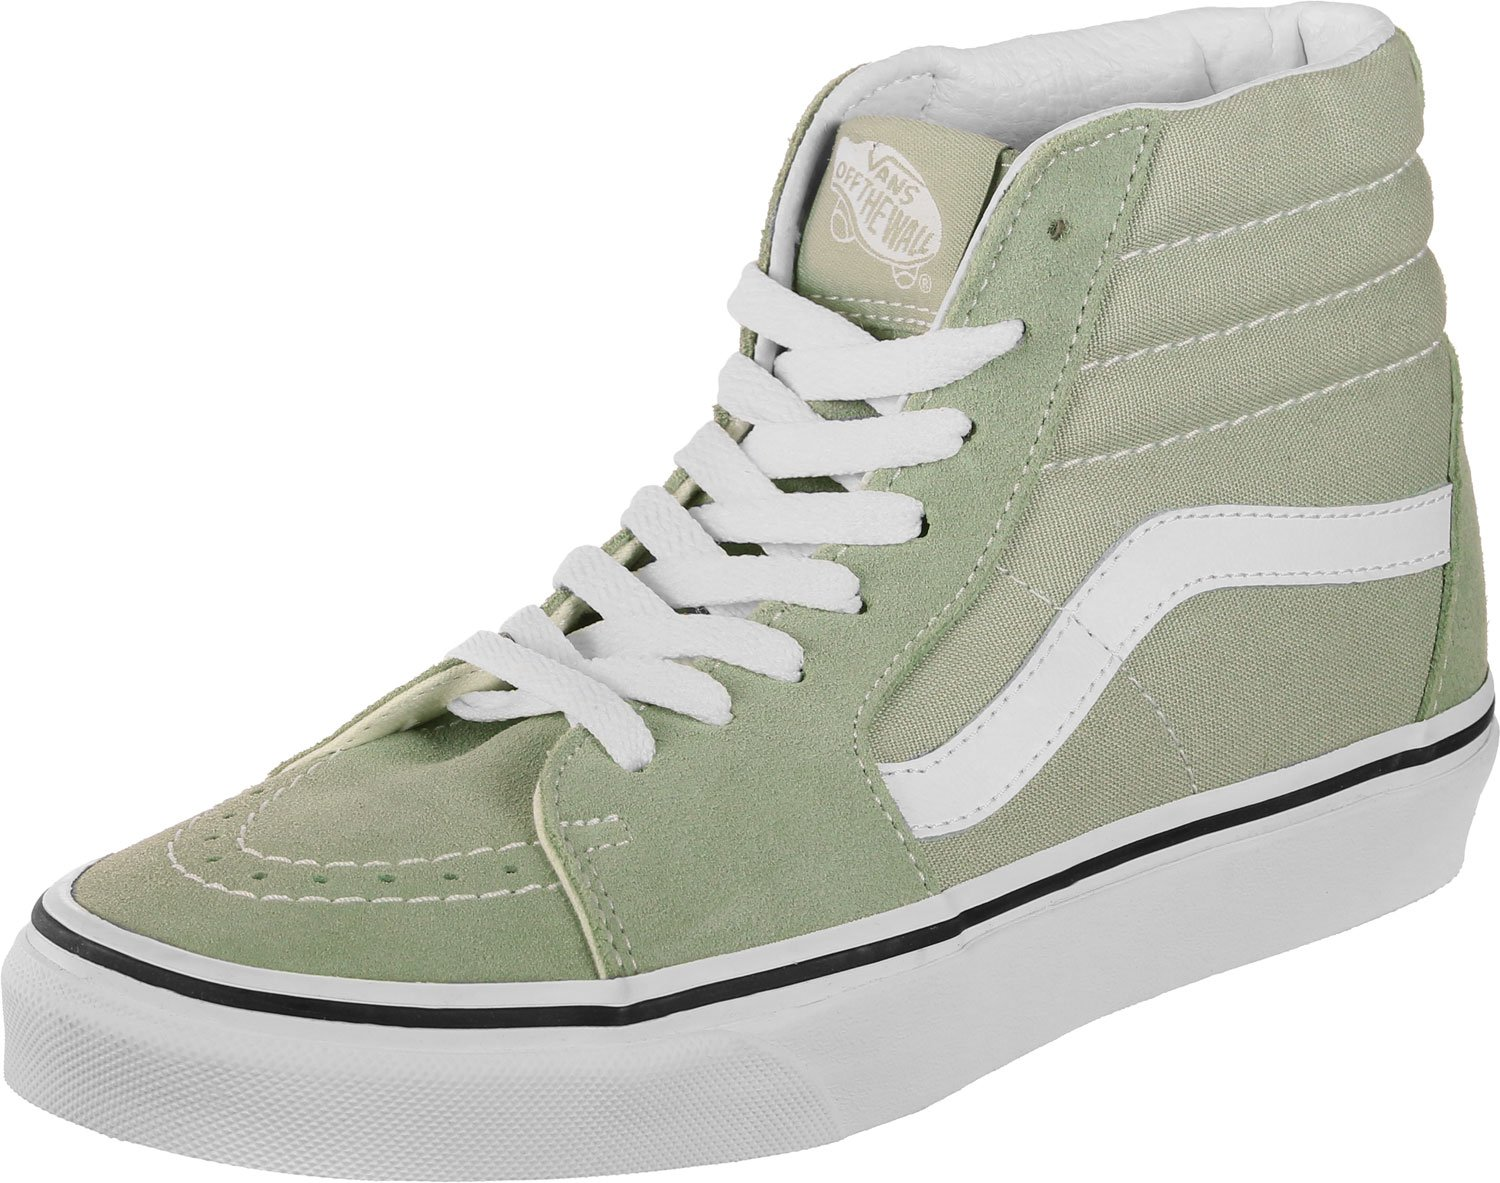 Vans Men's Sk8-Hi(Tm) Core Classics B078Y9W8TZ 11.5 B(M) US Women / 10 D(M) US|Desert Sage True White